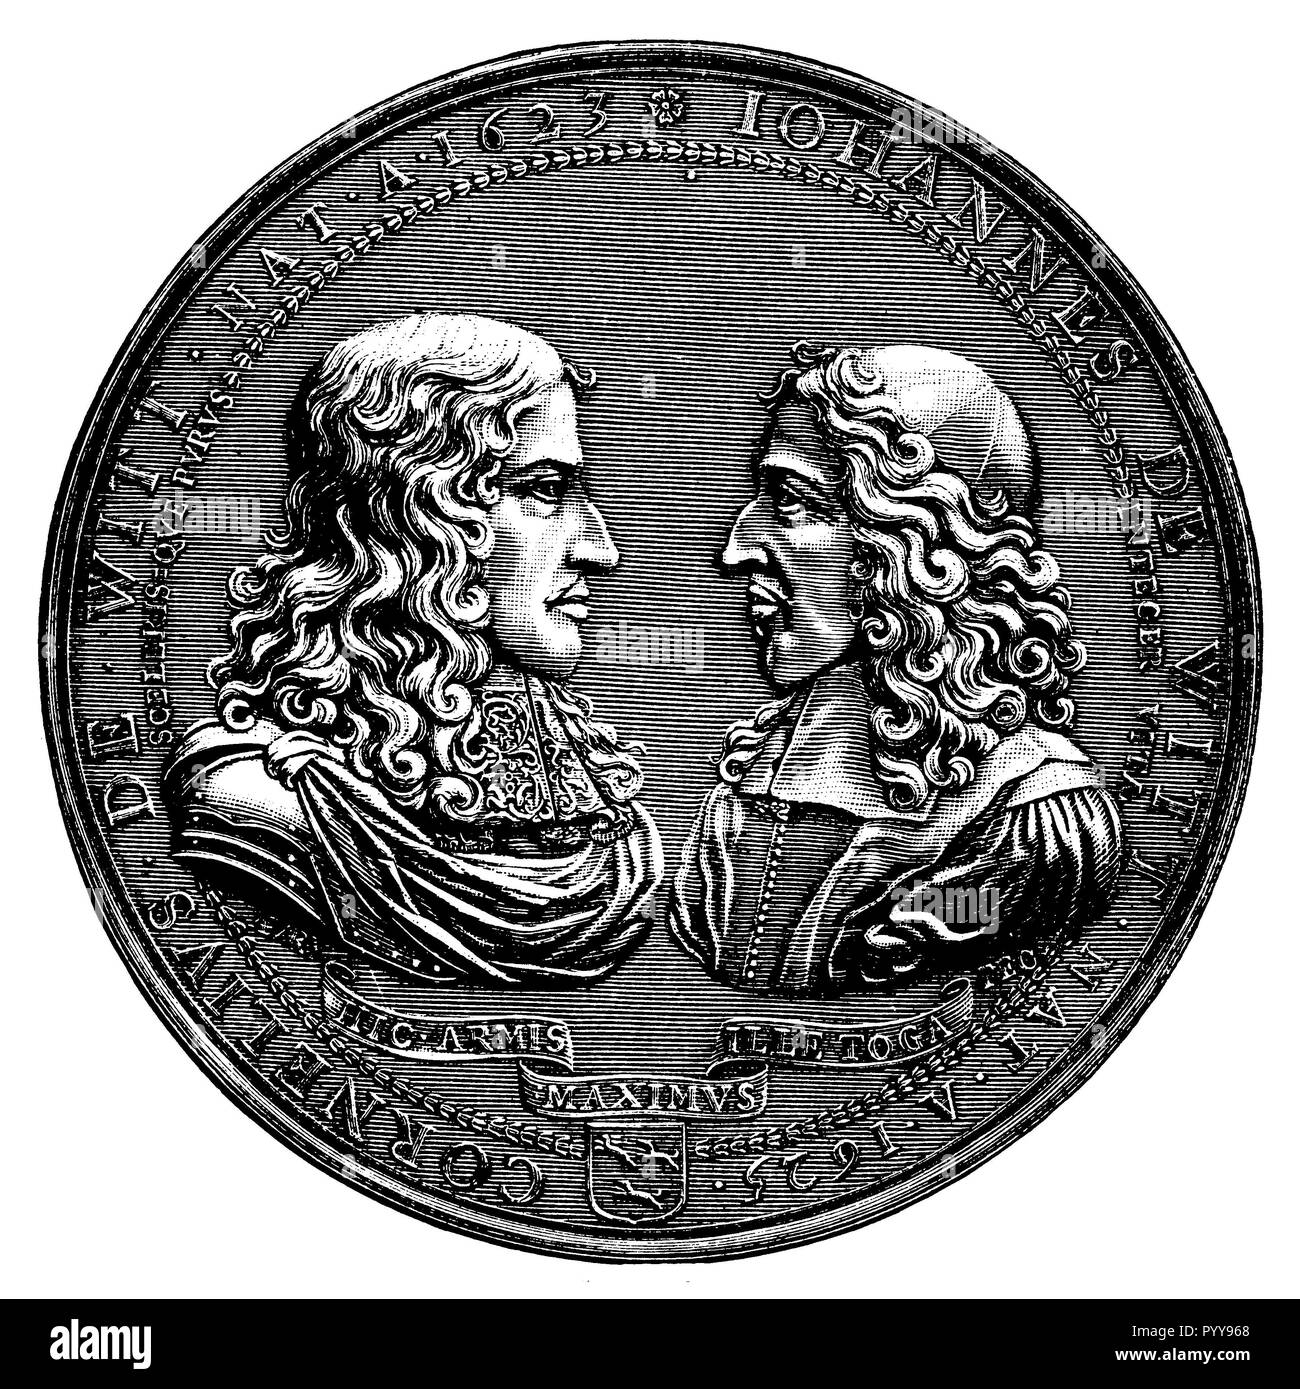 Portraits of the brothers Cornelius and Johann de Witt on a coin,   1899 - Stock Image